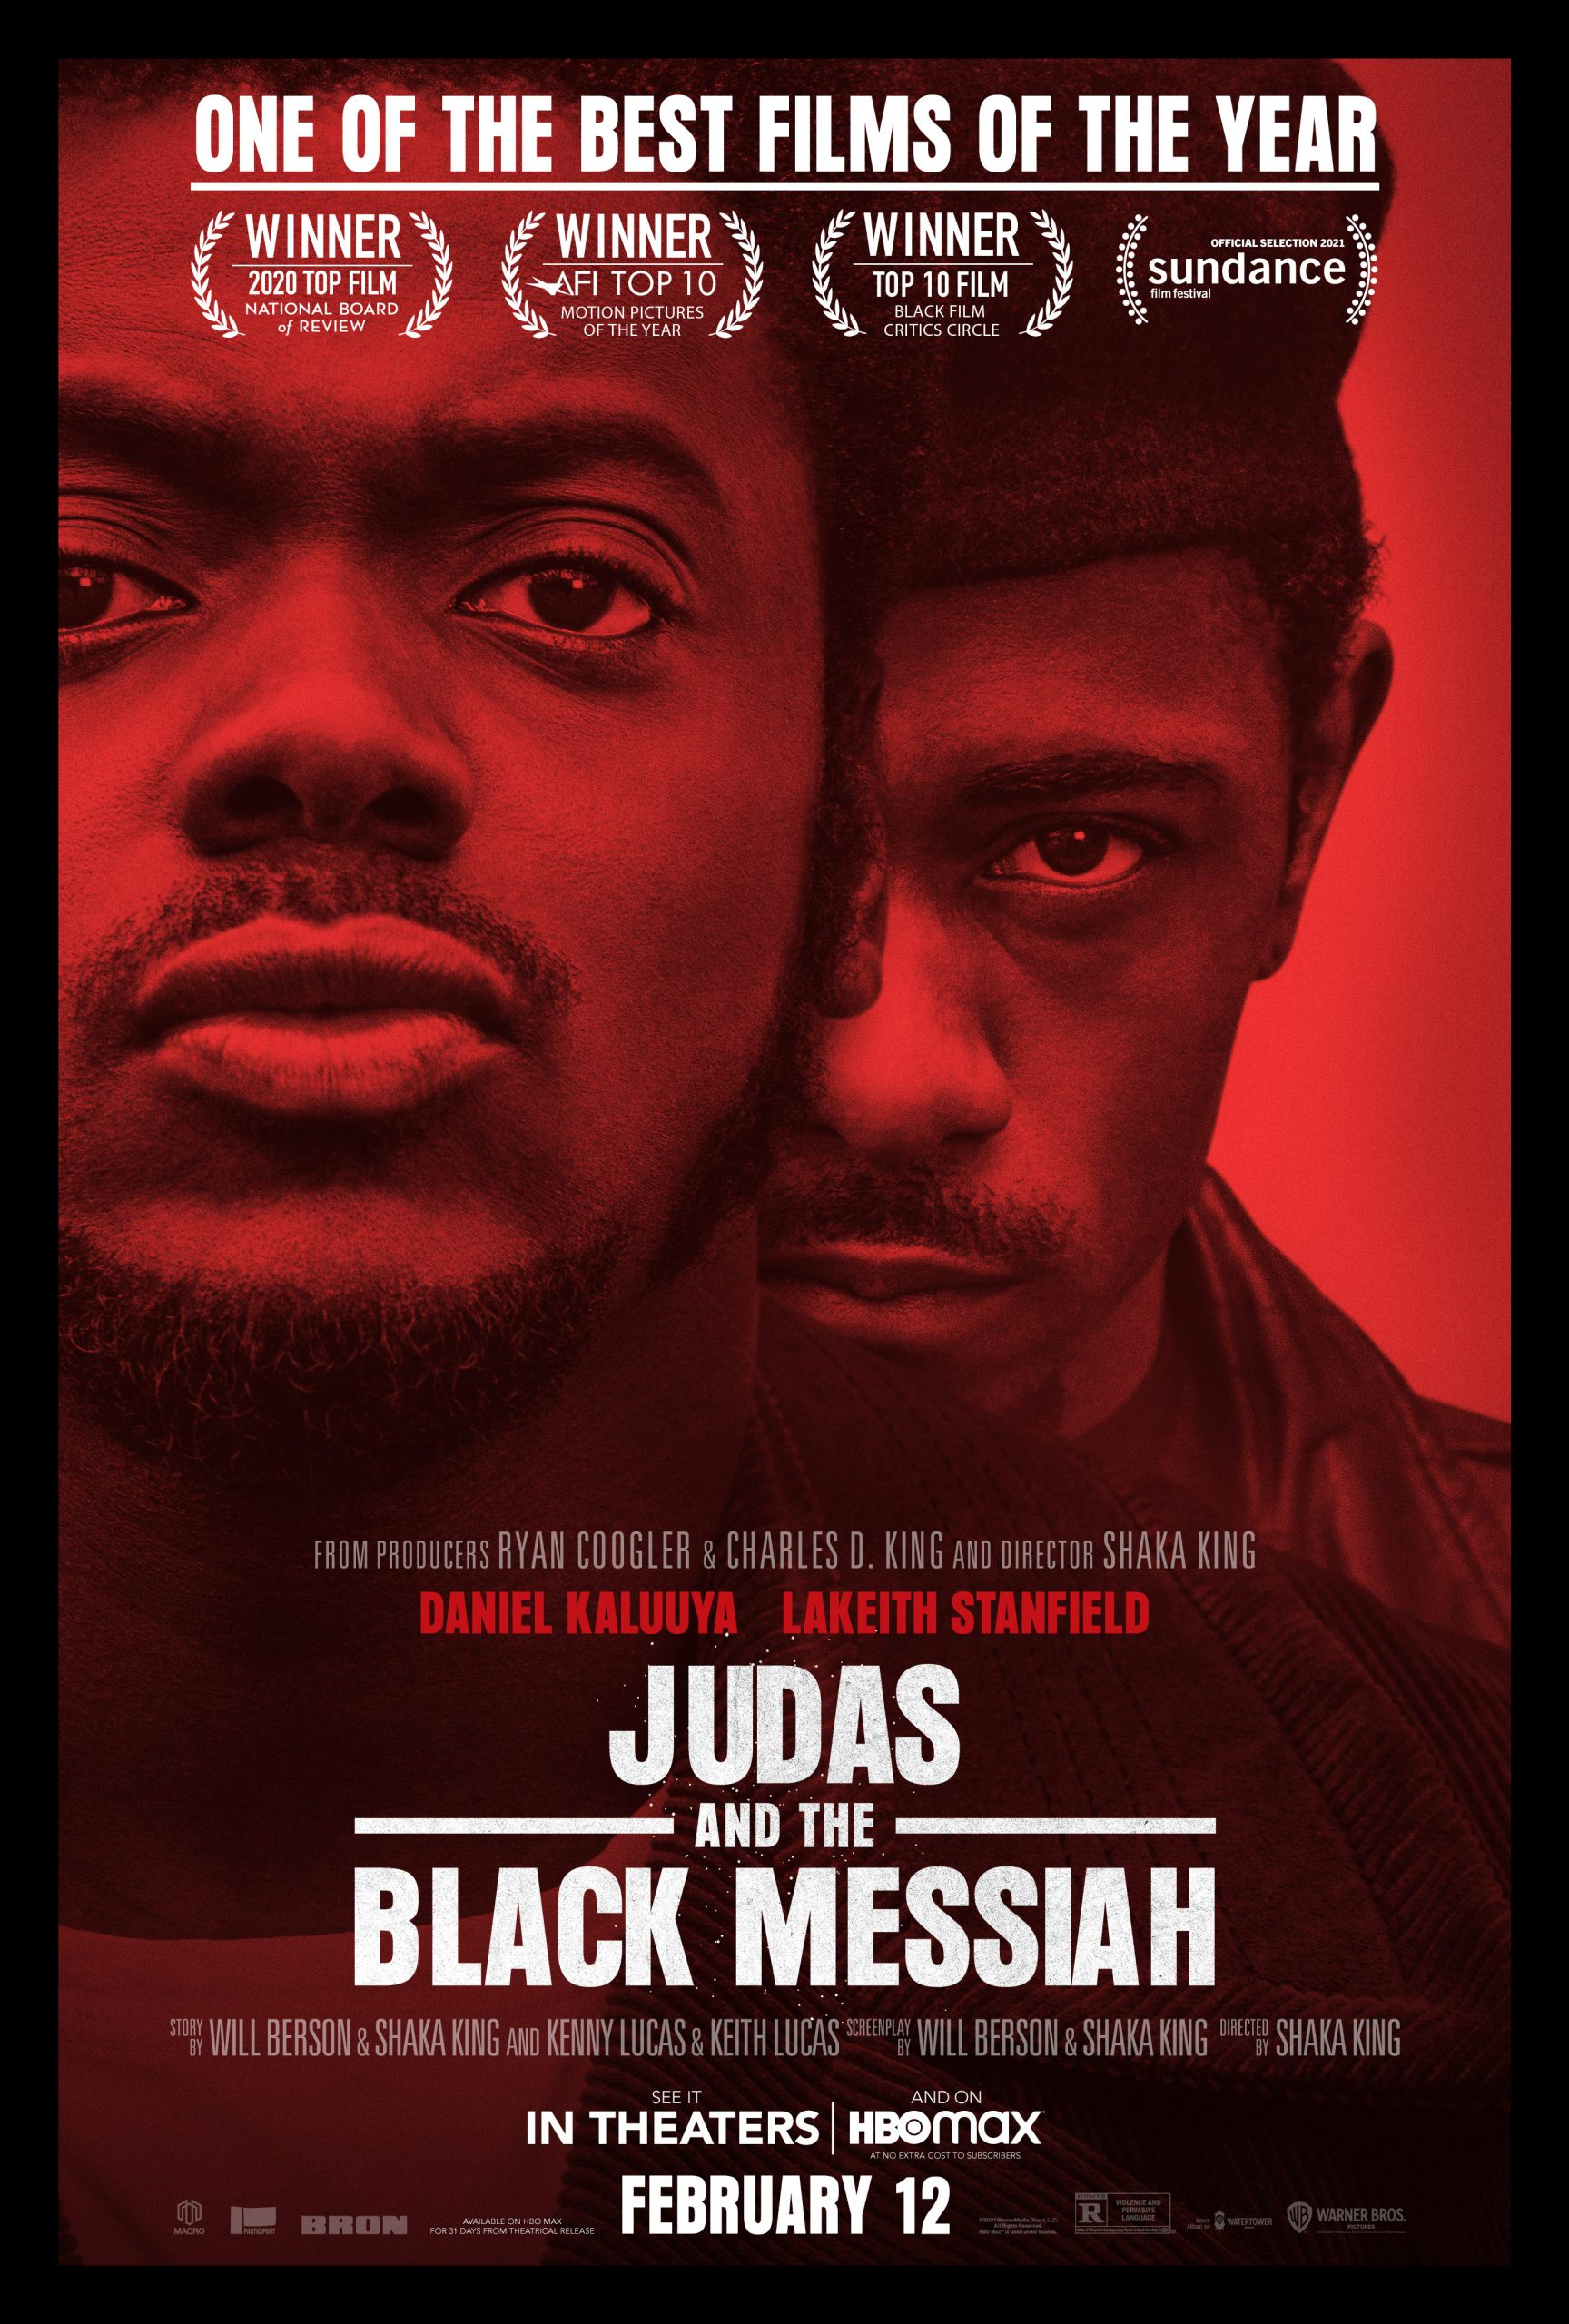 The Most Powerful Quotes From 'JUDAS AND THE BLACK MESSIAH'